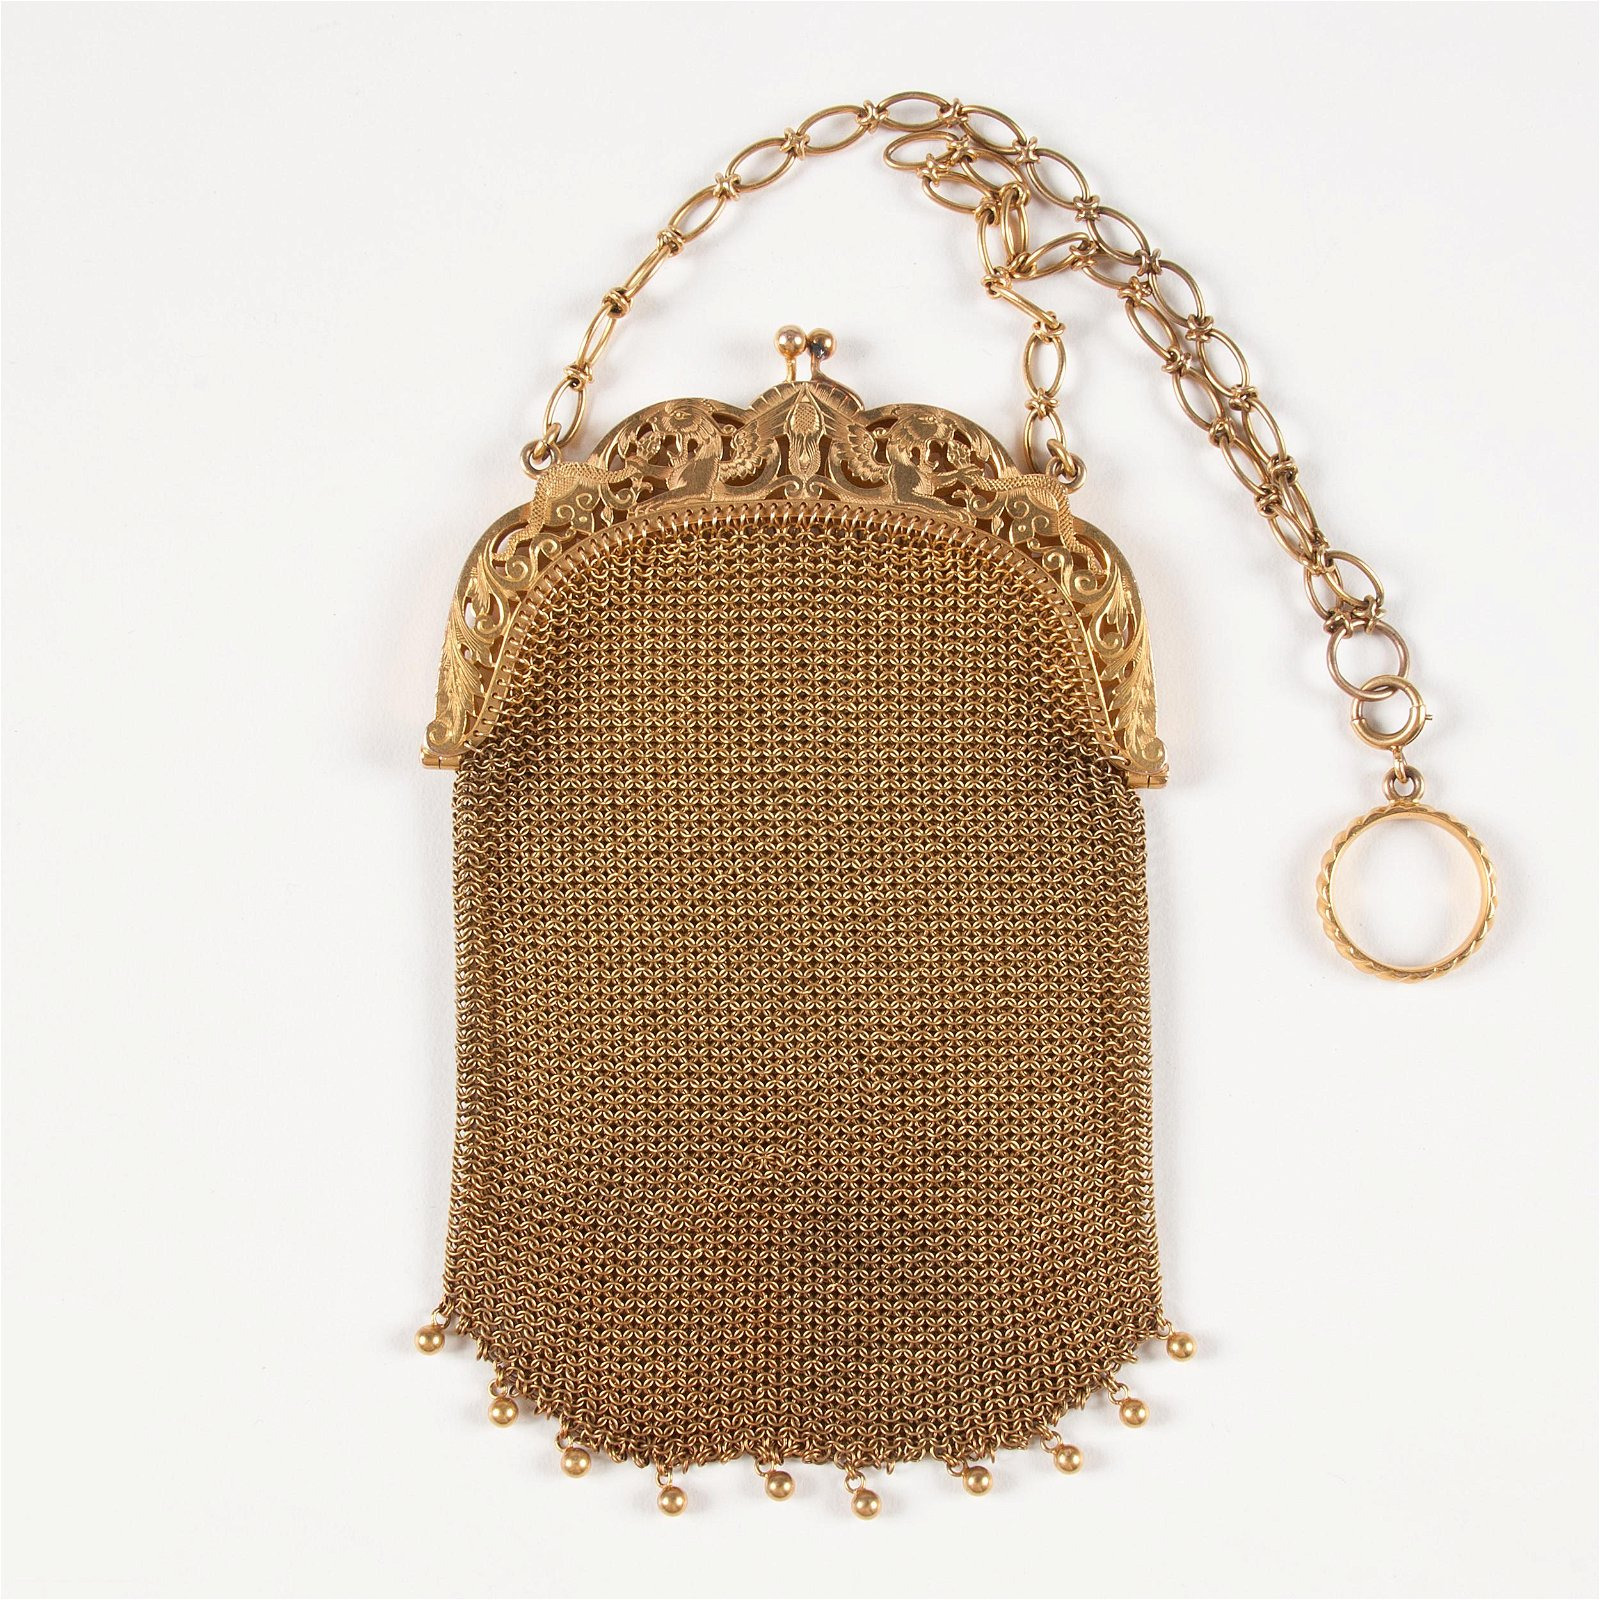 14K Yellow Gold Mesh Purse